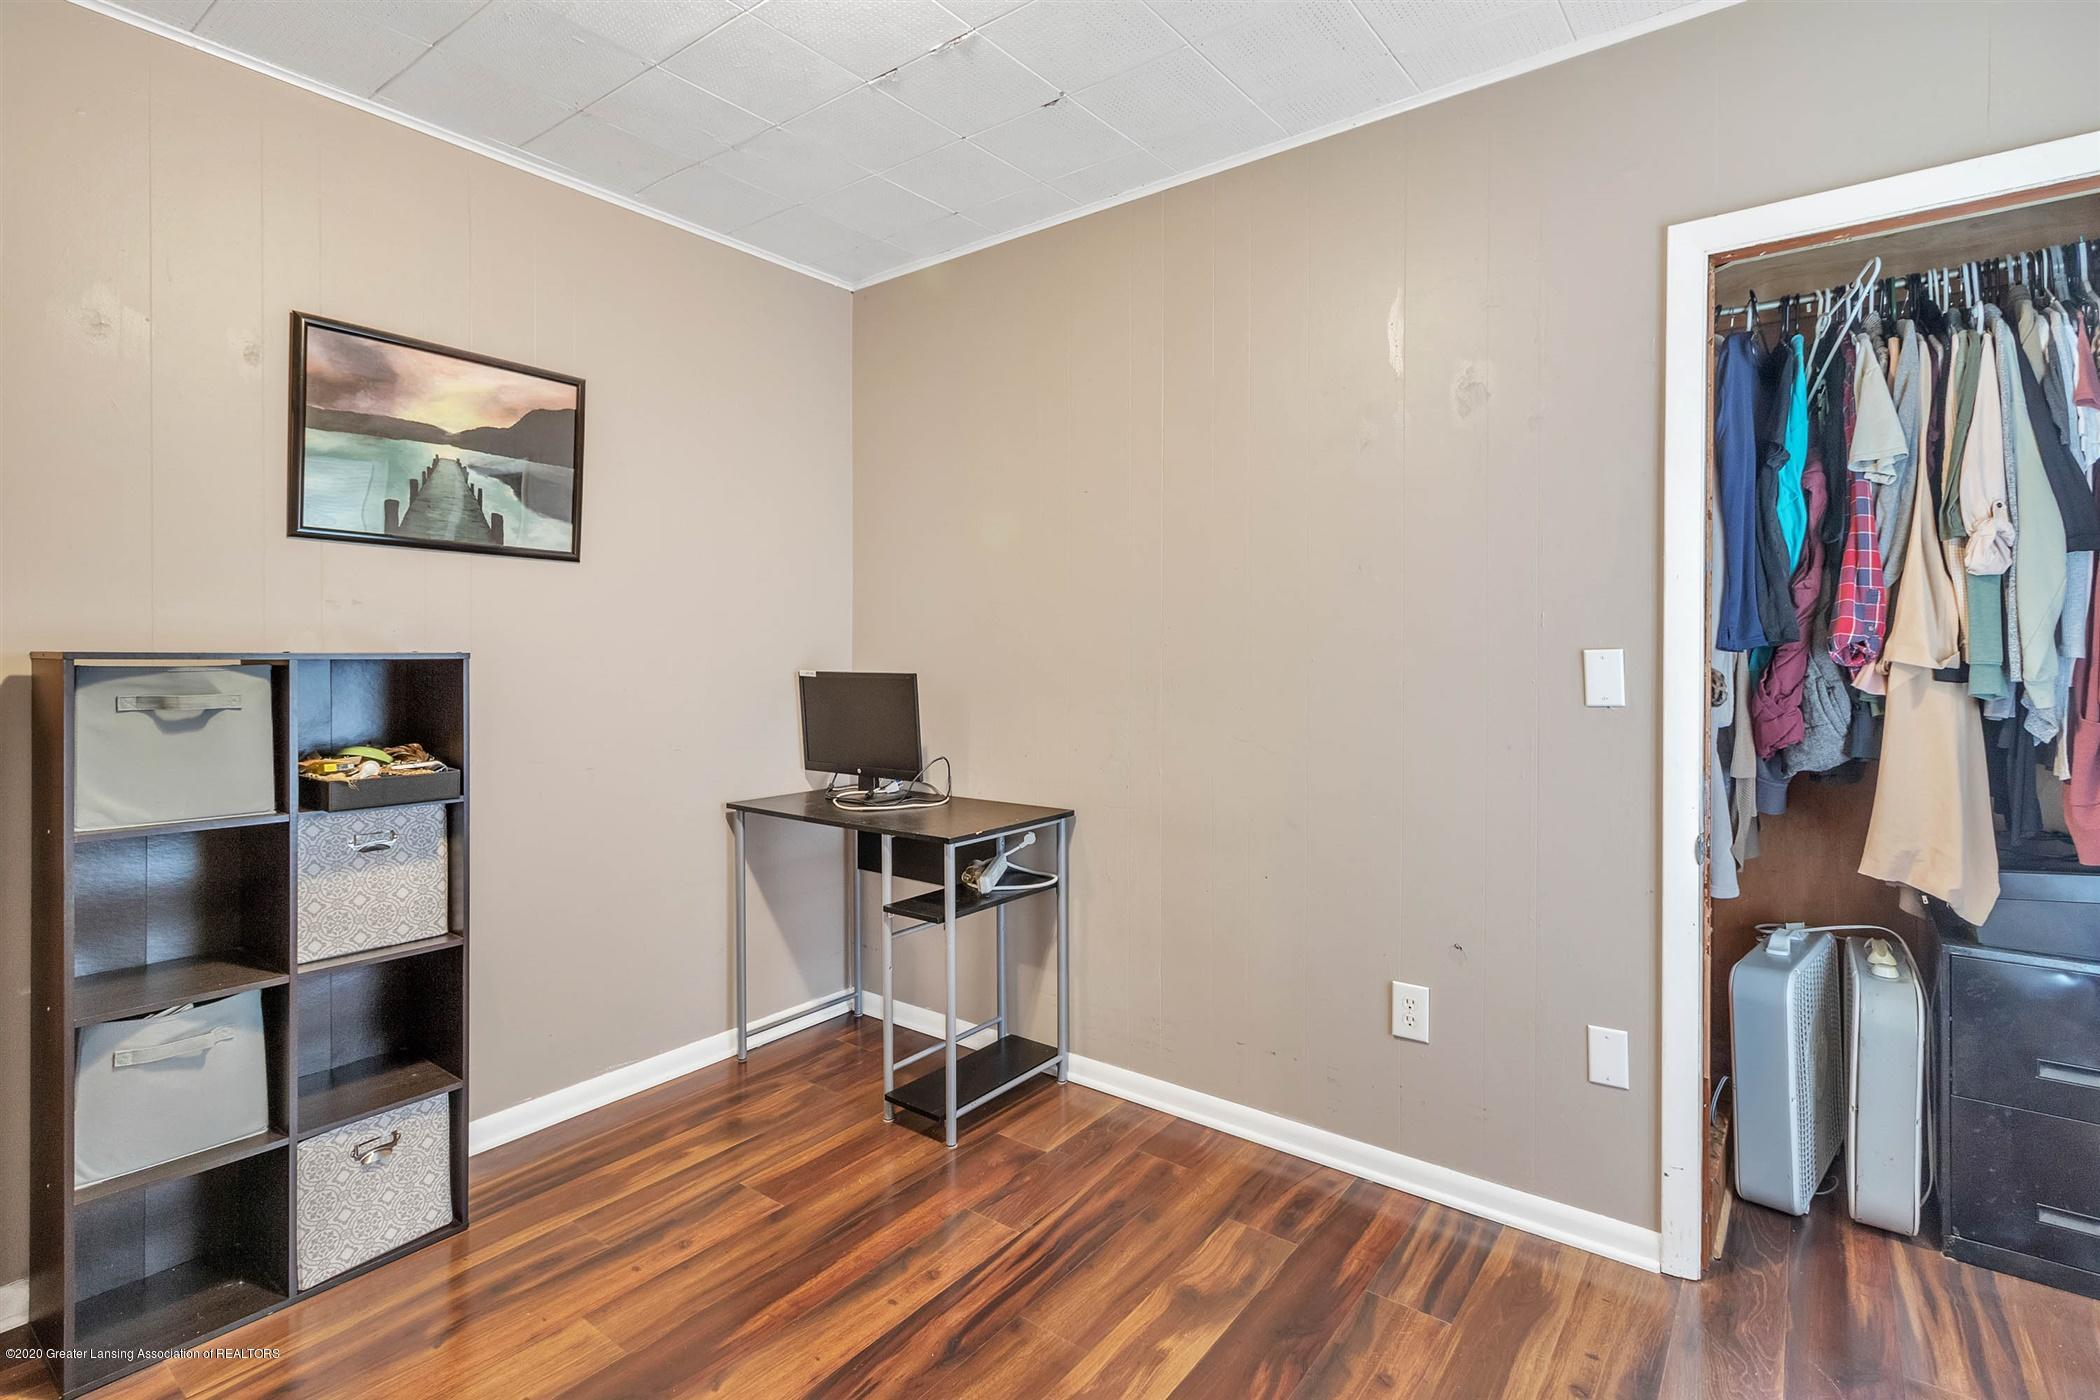 2127 Forest Ave - 27-2127 Forest Ave-WindowStill-Real - 27